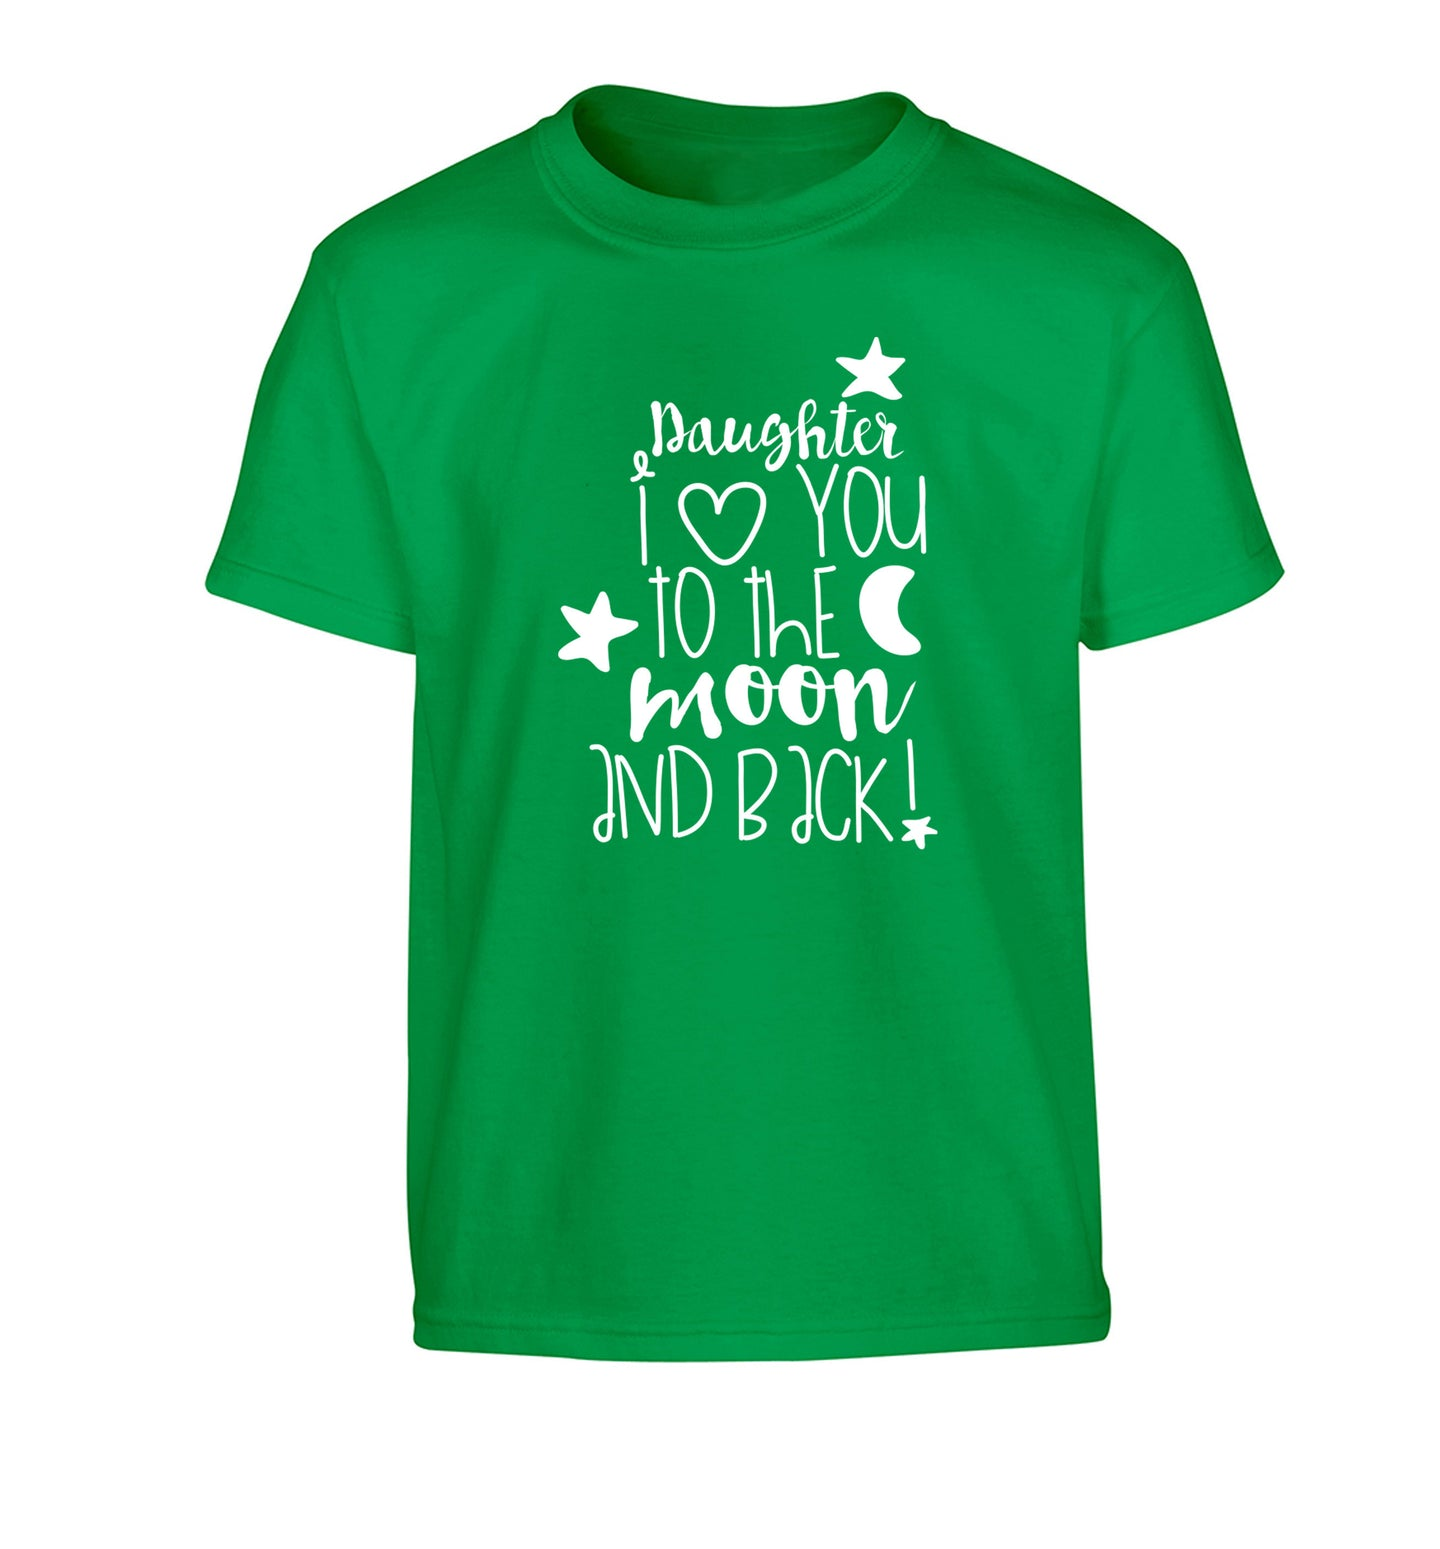 Daughter I love you to the moon and back Children's green Tshirt 12-14 Years